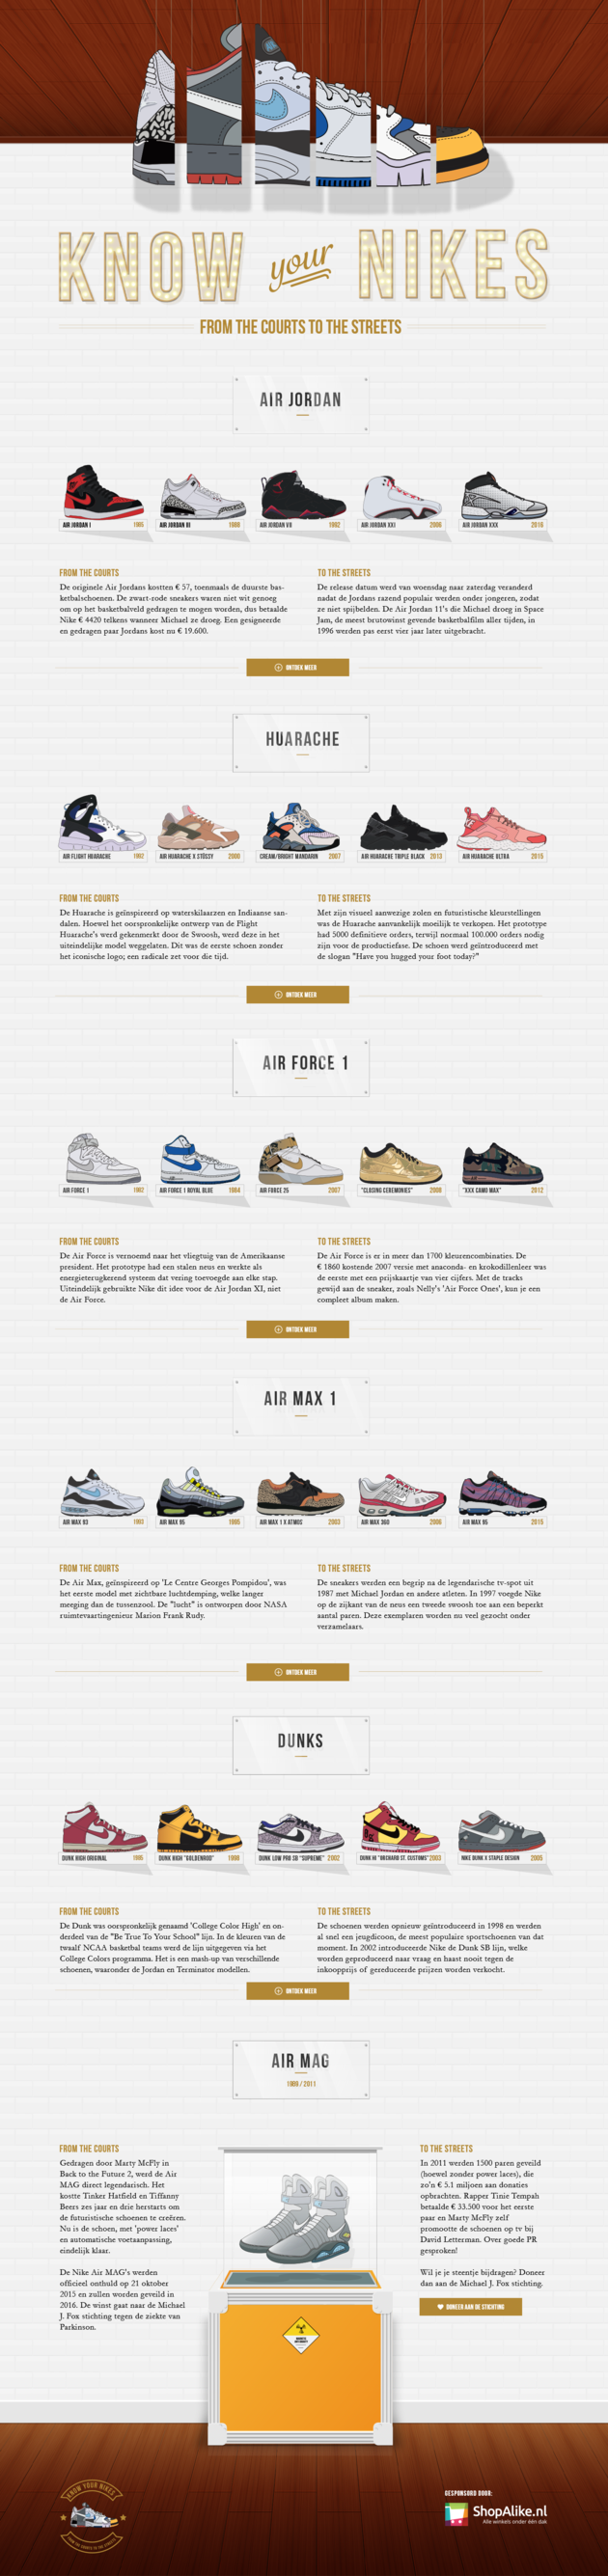 Nike-infographic-NL